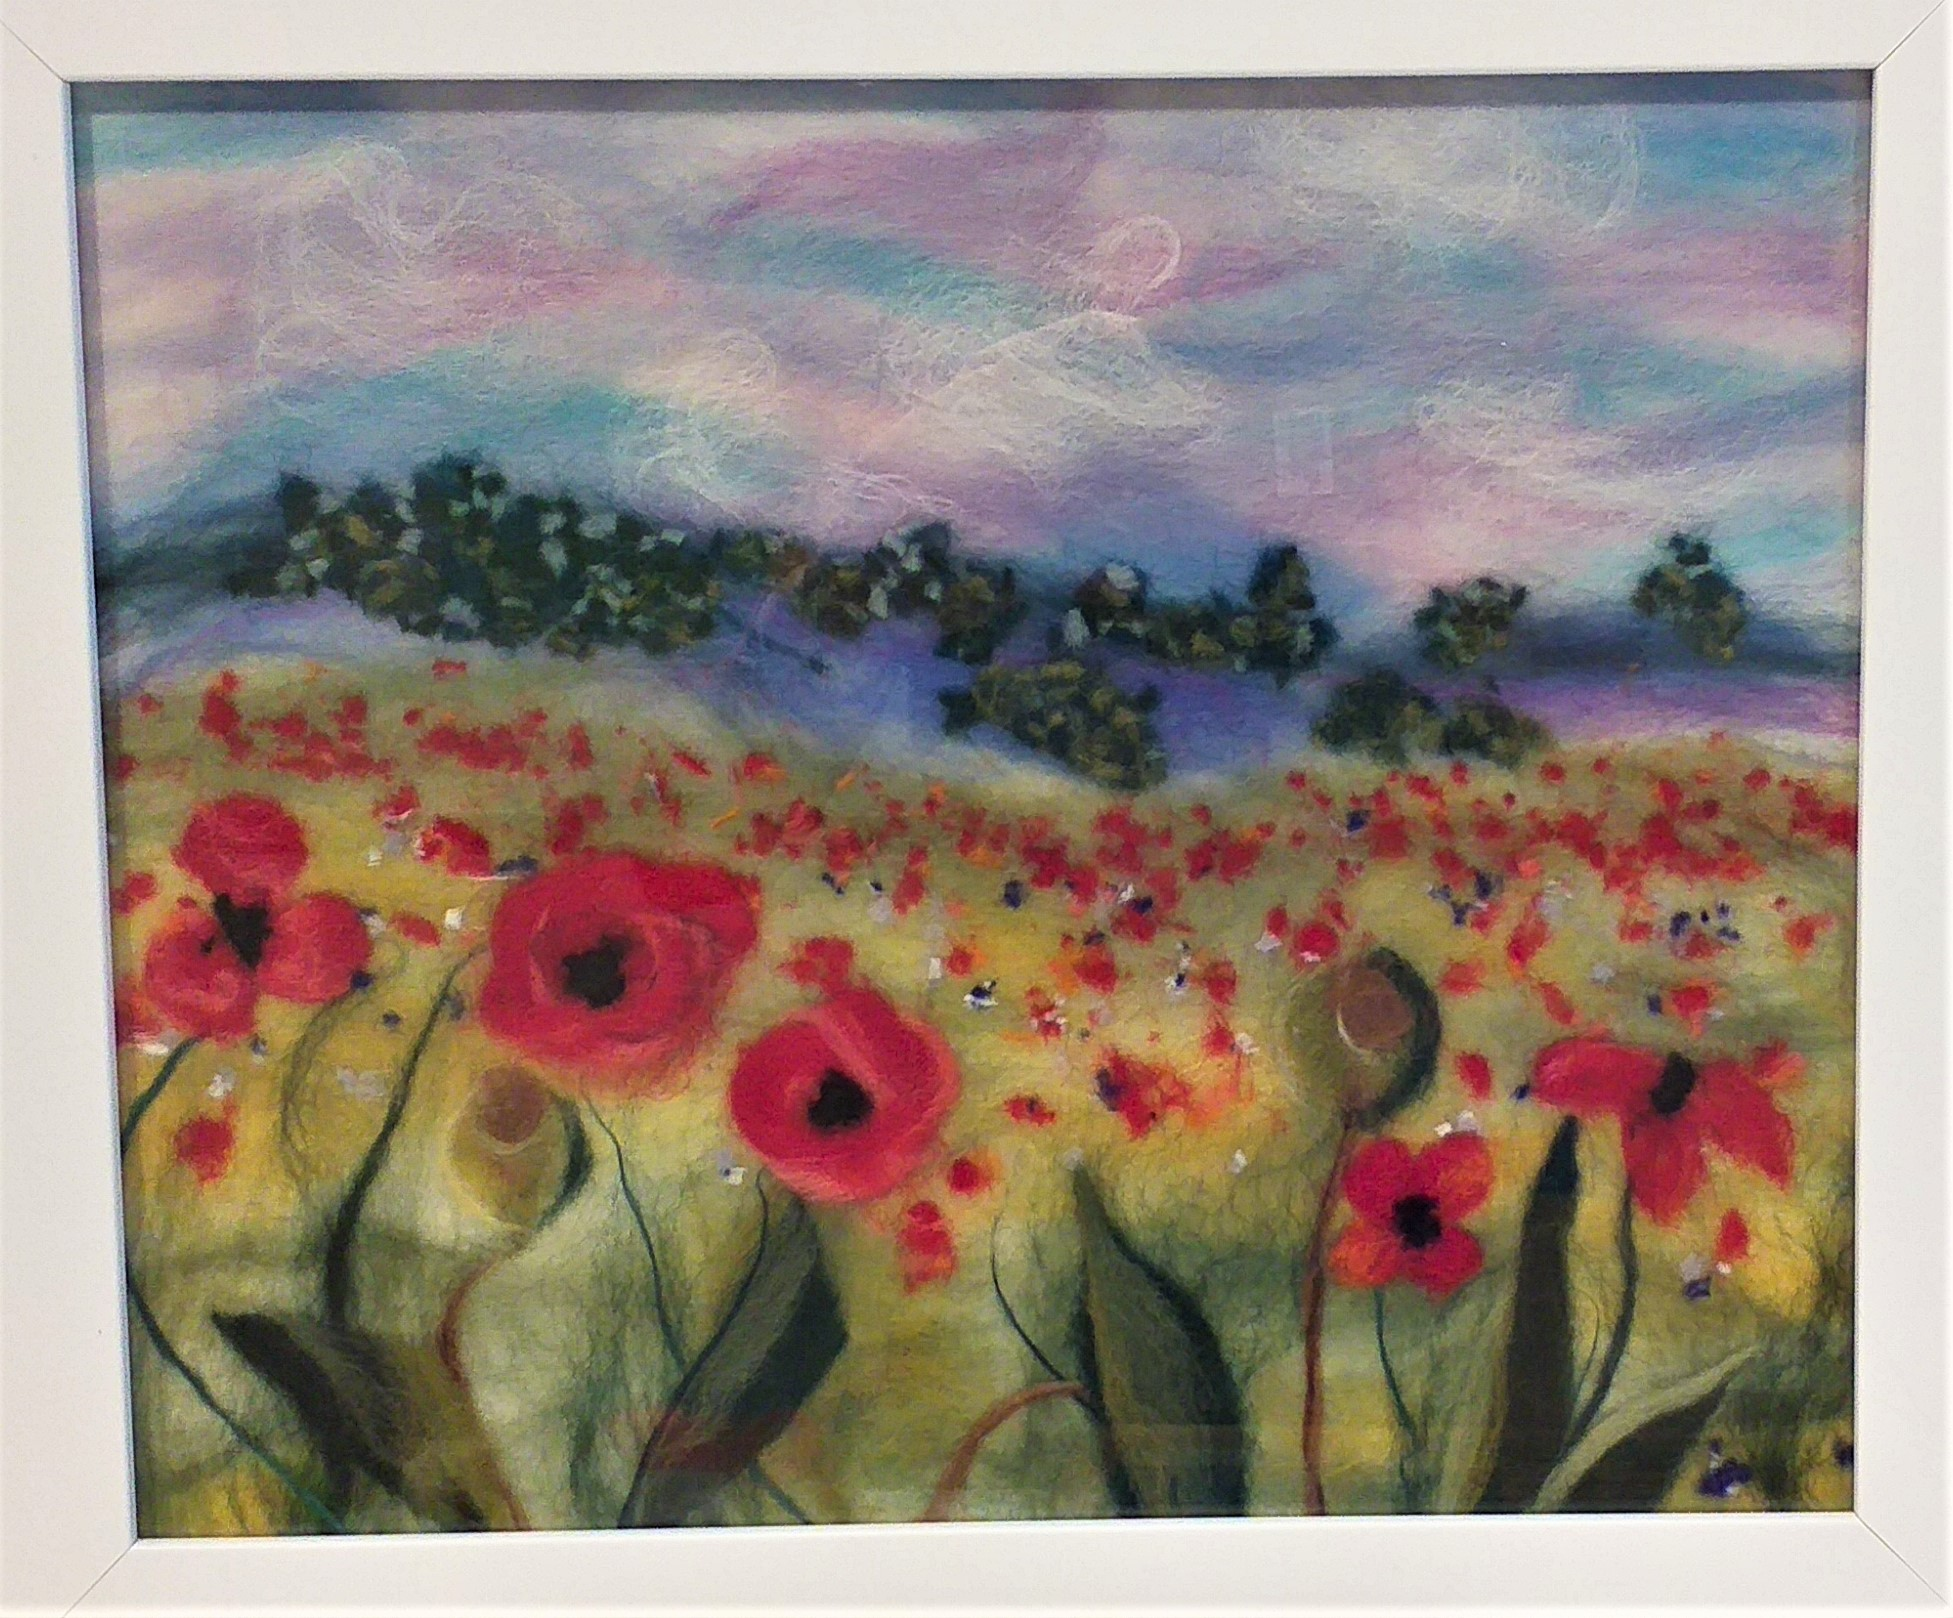 'Filed with Red poppies' wool painting created by artist Chrys Hendi-Warner